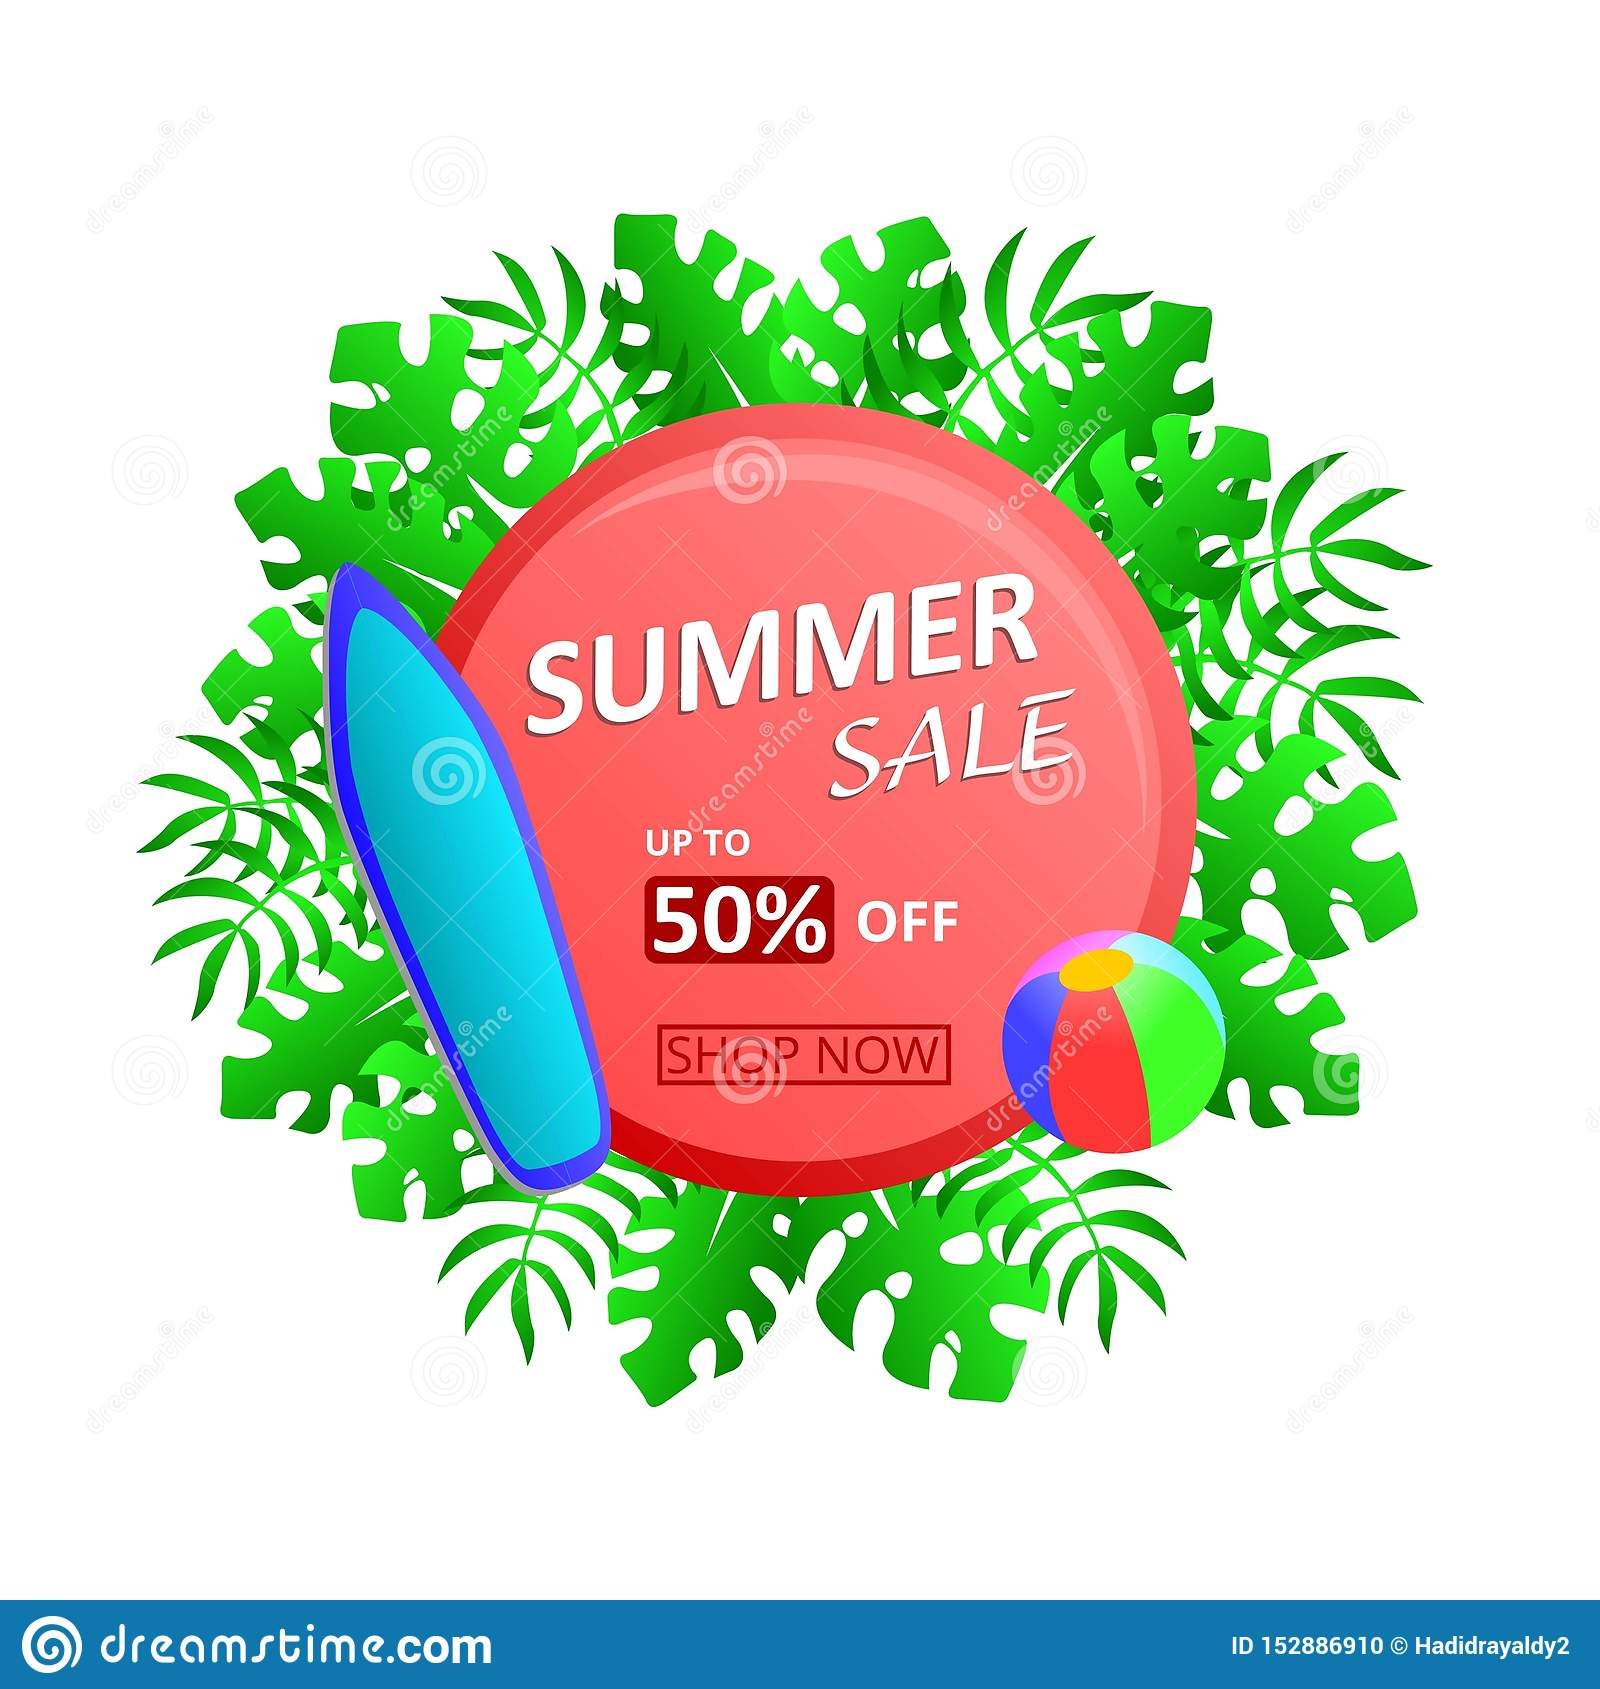 Summer Sale Up To 50  Off Discount with tropical leaves, surfboard and beach ball.